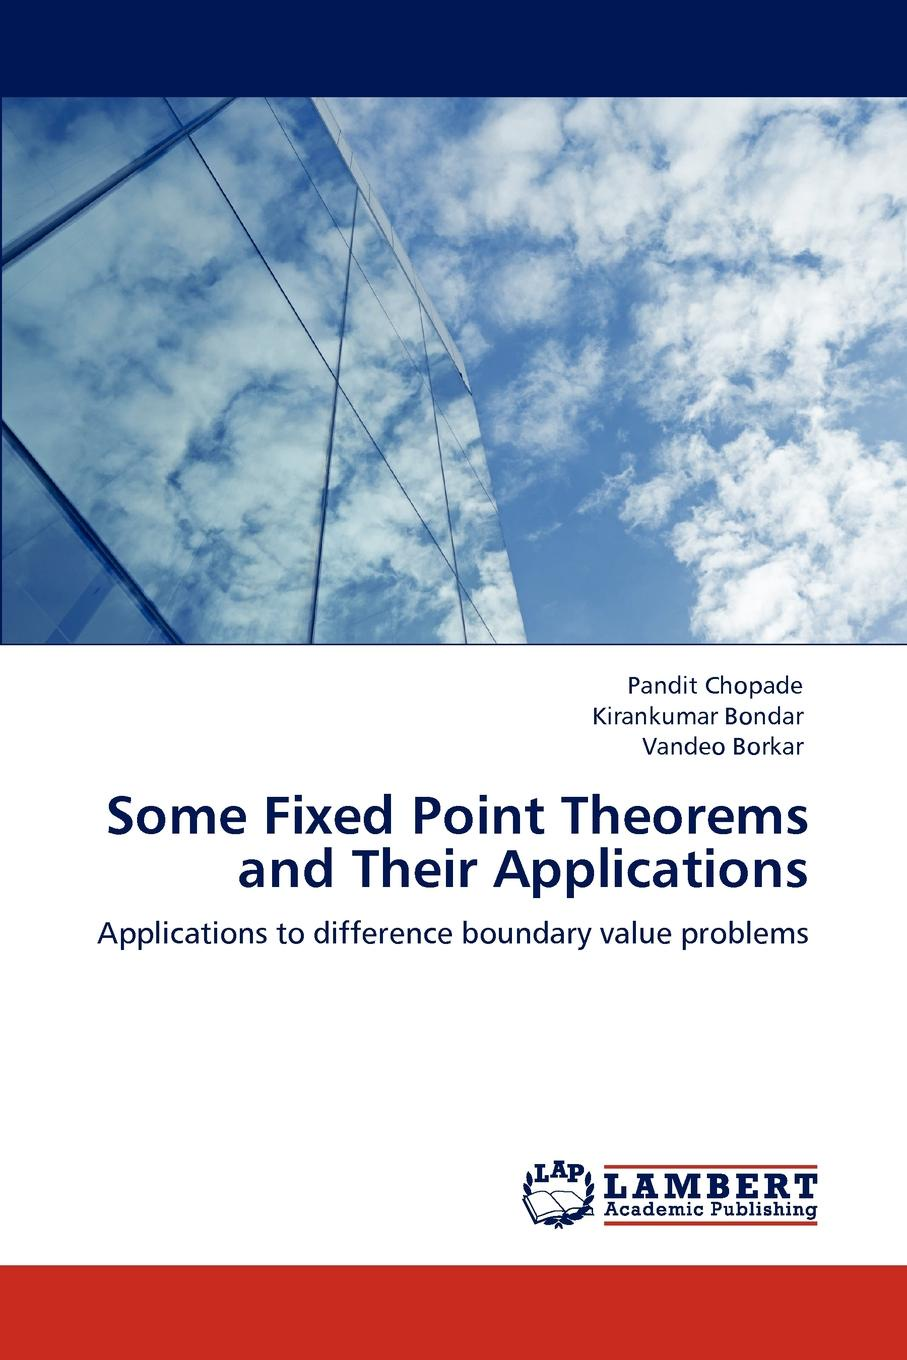 Pandit Chopade, Kirankumar Bondar, Vandeo Borkar Some Fixed Point Theorems and Their Applications цены